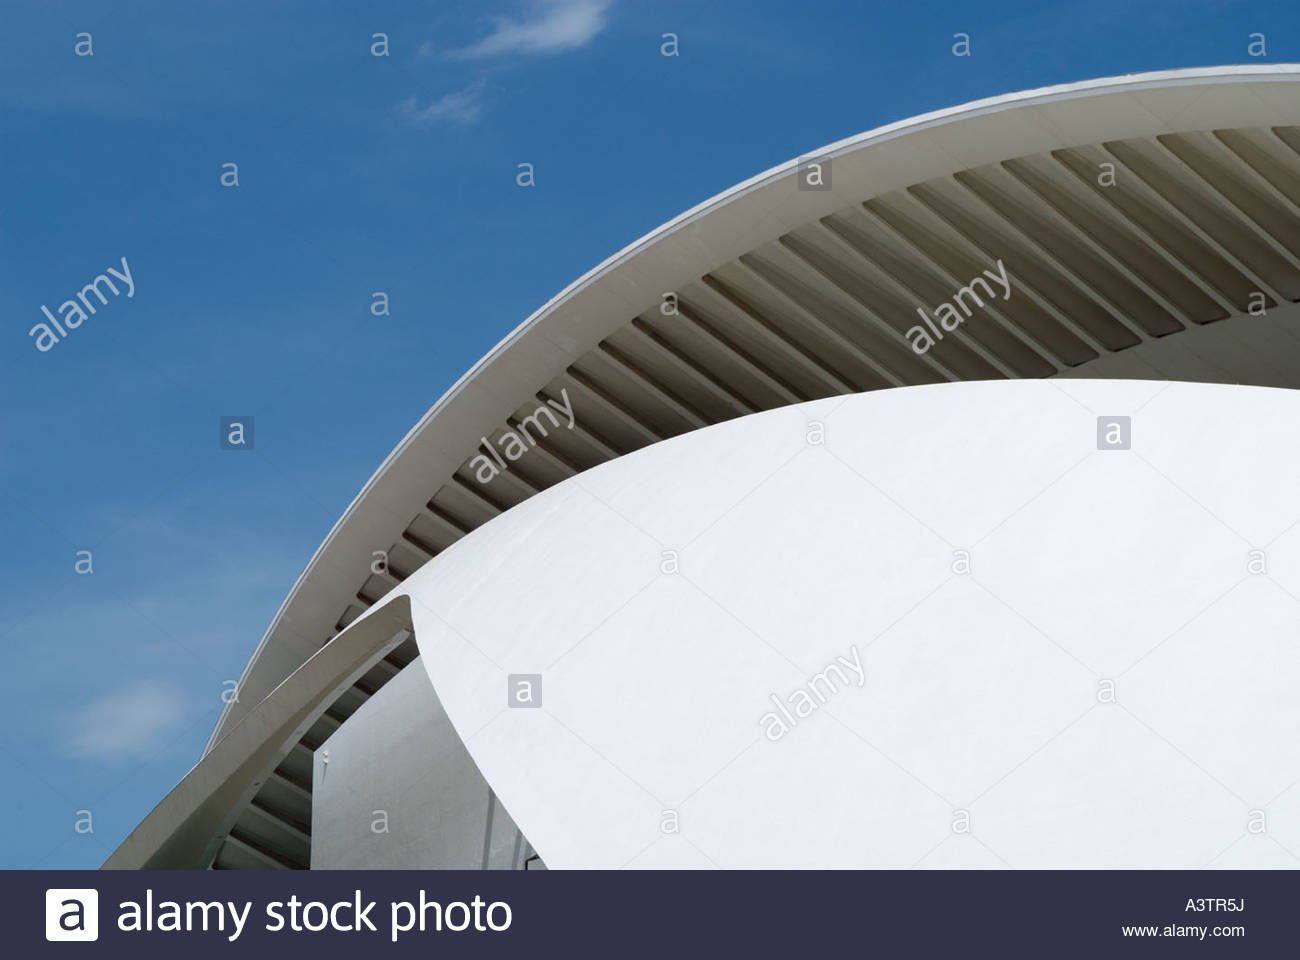 El Palau de les Arts Reina Sofía (Opera house) in the City of Arts and Sciences Valencia, Spain, by architect - Stock Image